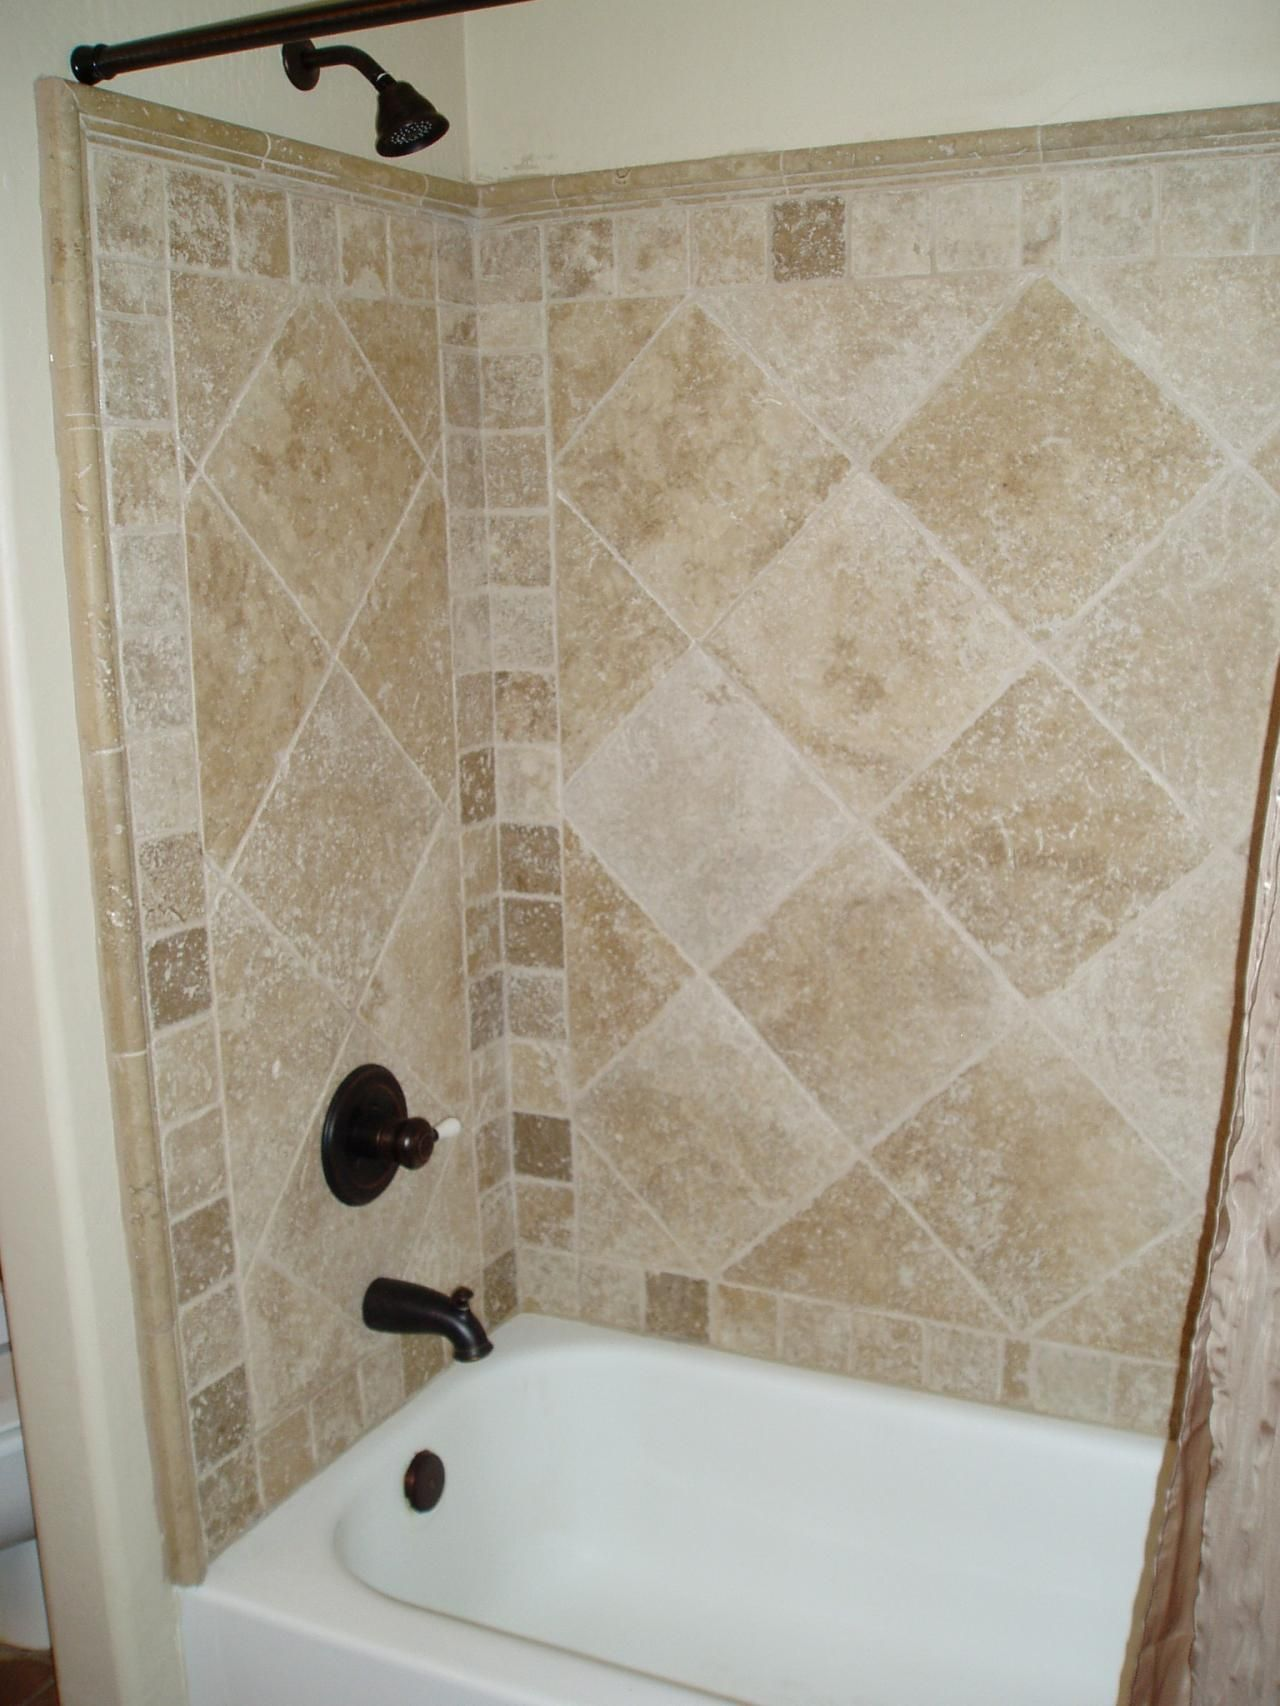 Tile Look Shower Surround.Shower Surrounds That Look Like Tile Your Standard Hall